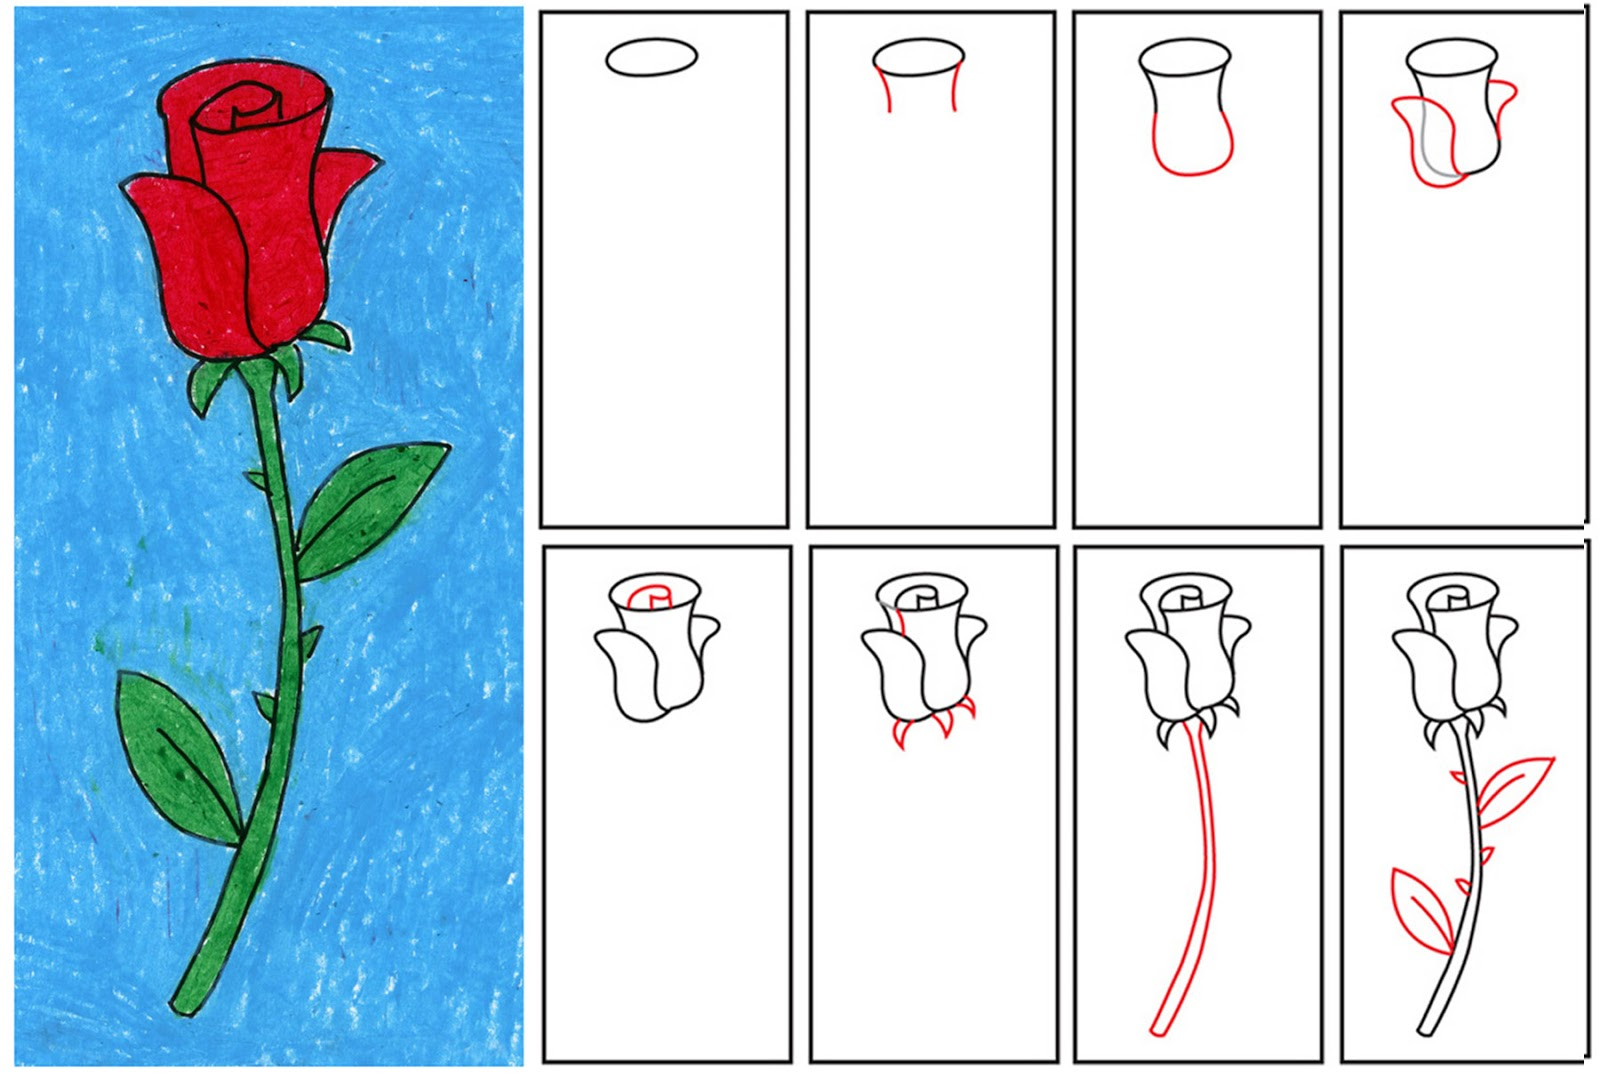 How to draw a simple flower for children clipart best for How to draw a basic flower